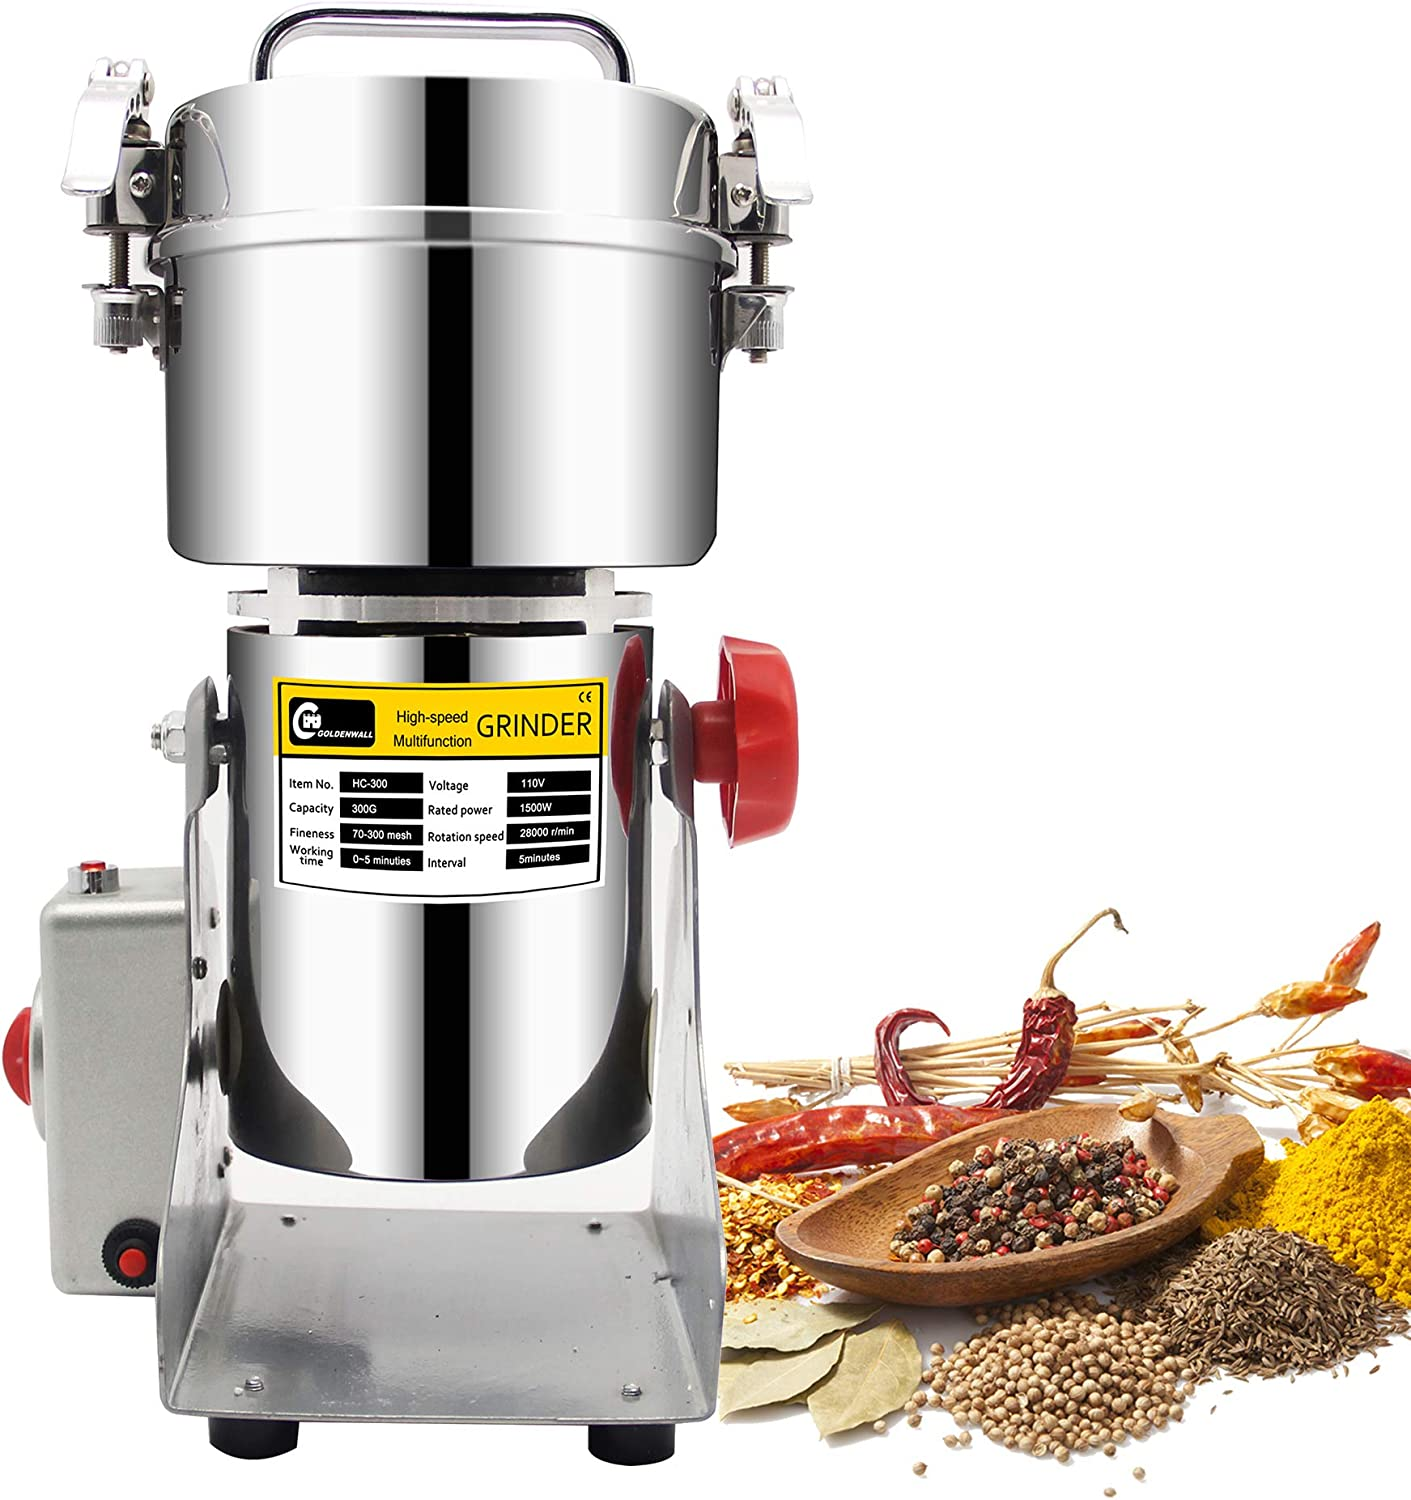 CGOLDENWALL 300g Stainless Steel Electric High-Speed Grain Grinder Mill Family Medicial Powder Machine Commercial Cereals Grain Mill Herb Grinder Pulverizer 110V Gift for Mom Wife